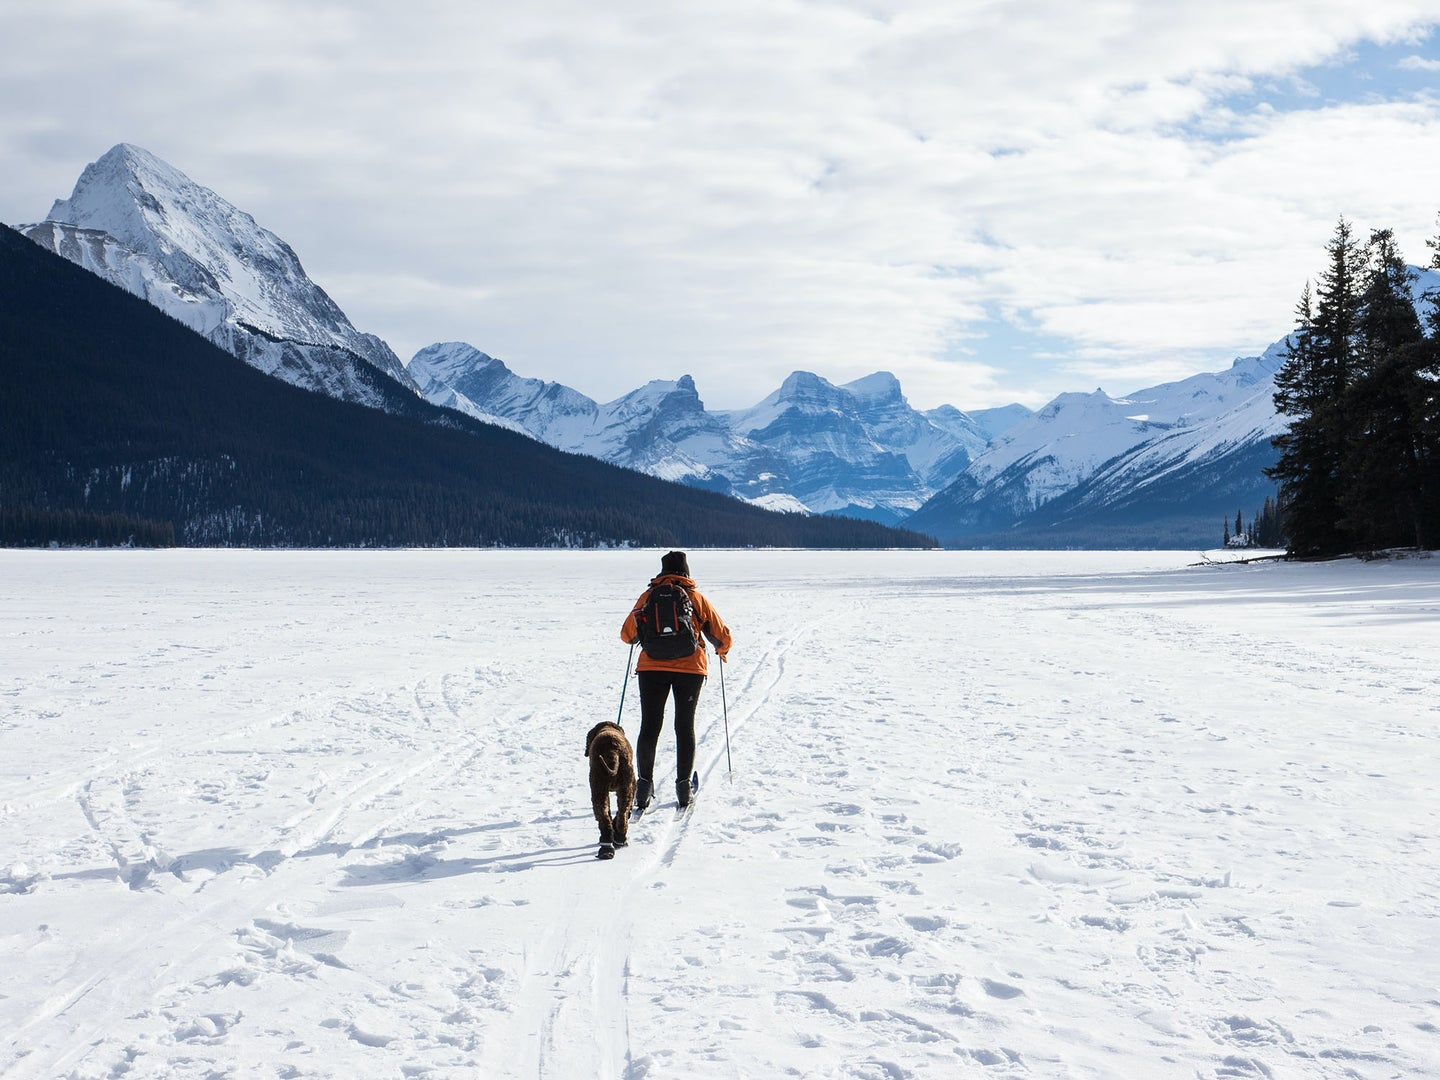 man on cross country skis with a dog going over a snowy flat part of a mountain